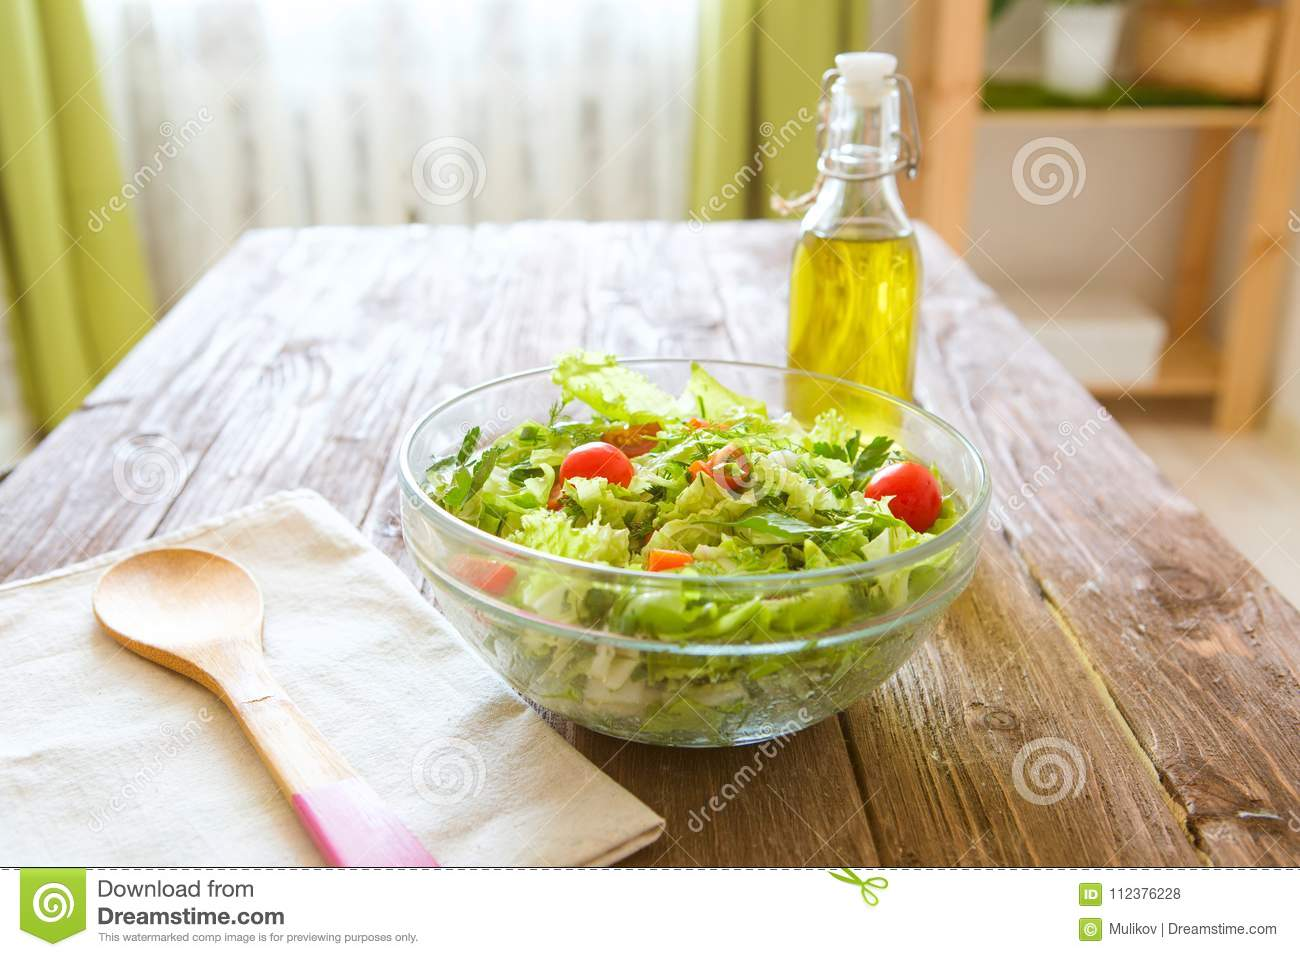 Full bowl of fresh green salad on a wooden table against on a rustic kitchen. Concept healthy lifestyle and simple food